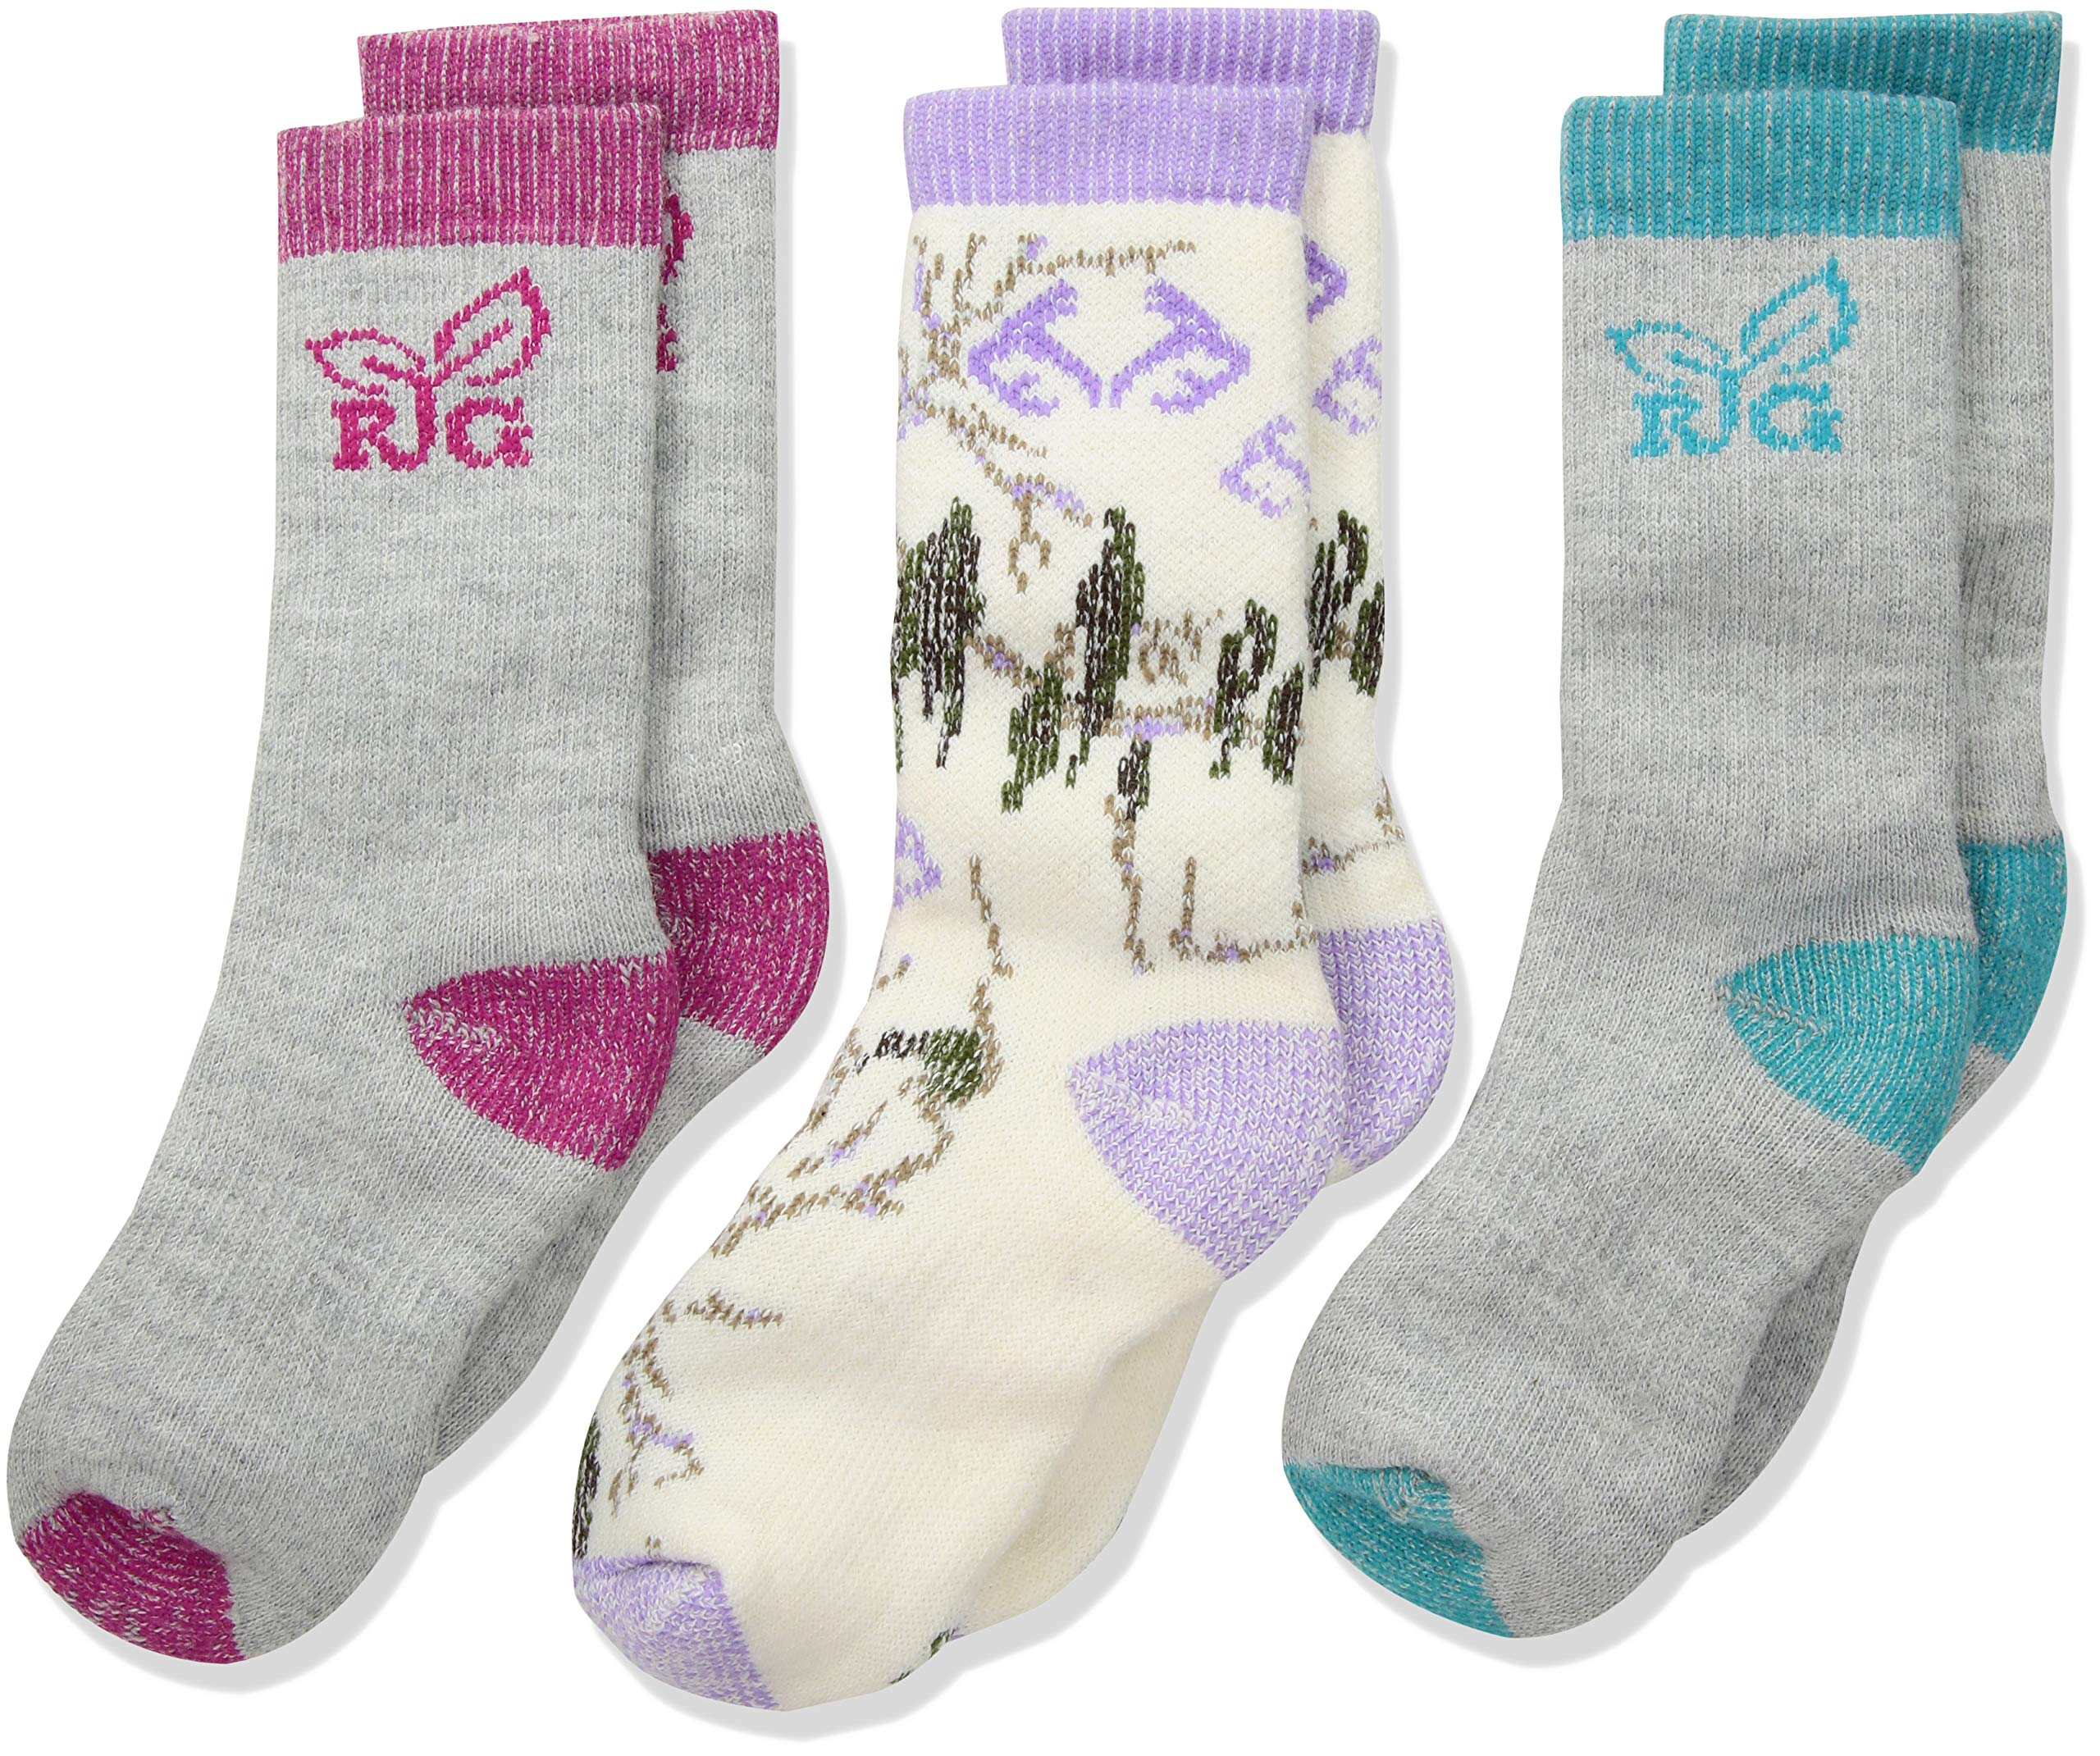 Realtree Girl's Mid Calf Socks Gift Box (3-Pair Pack) by Realtree